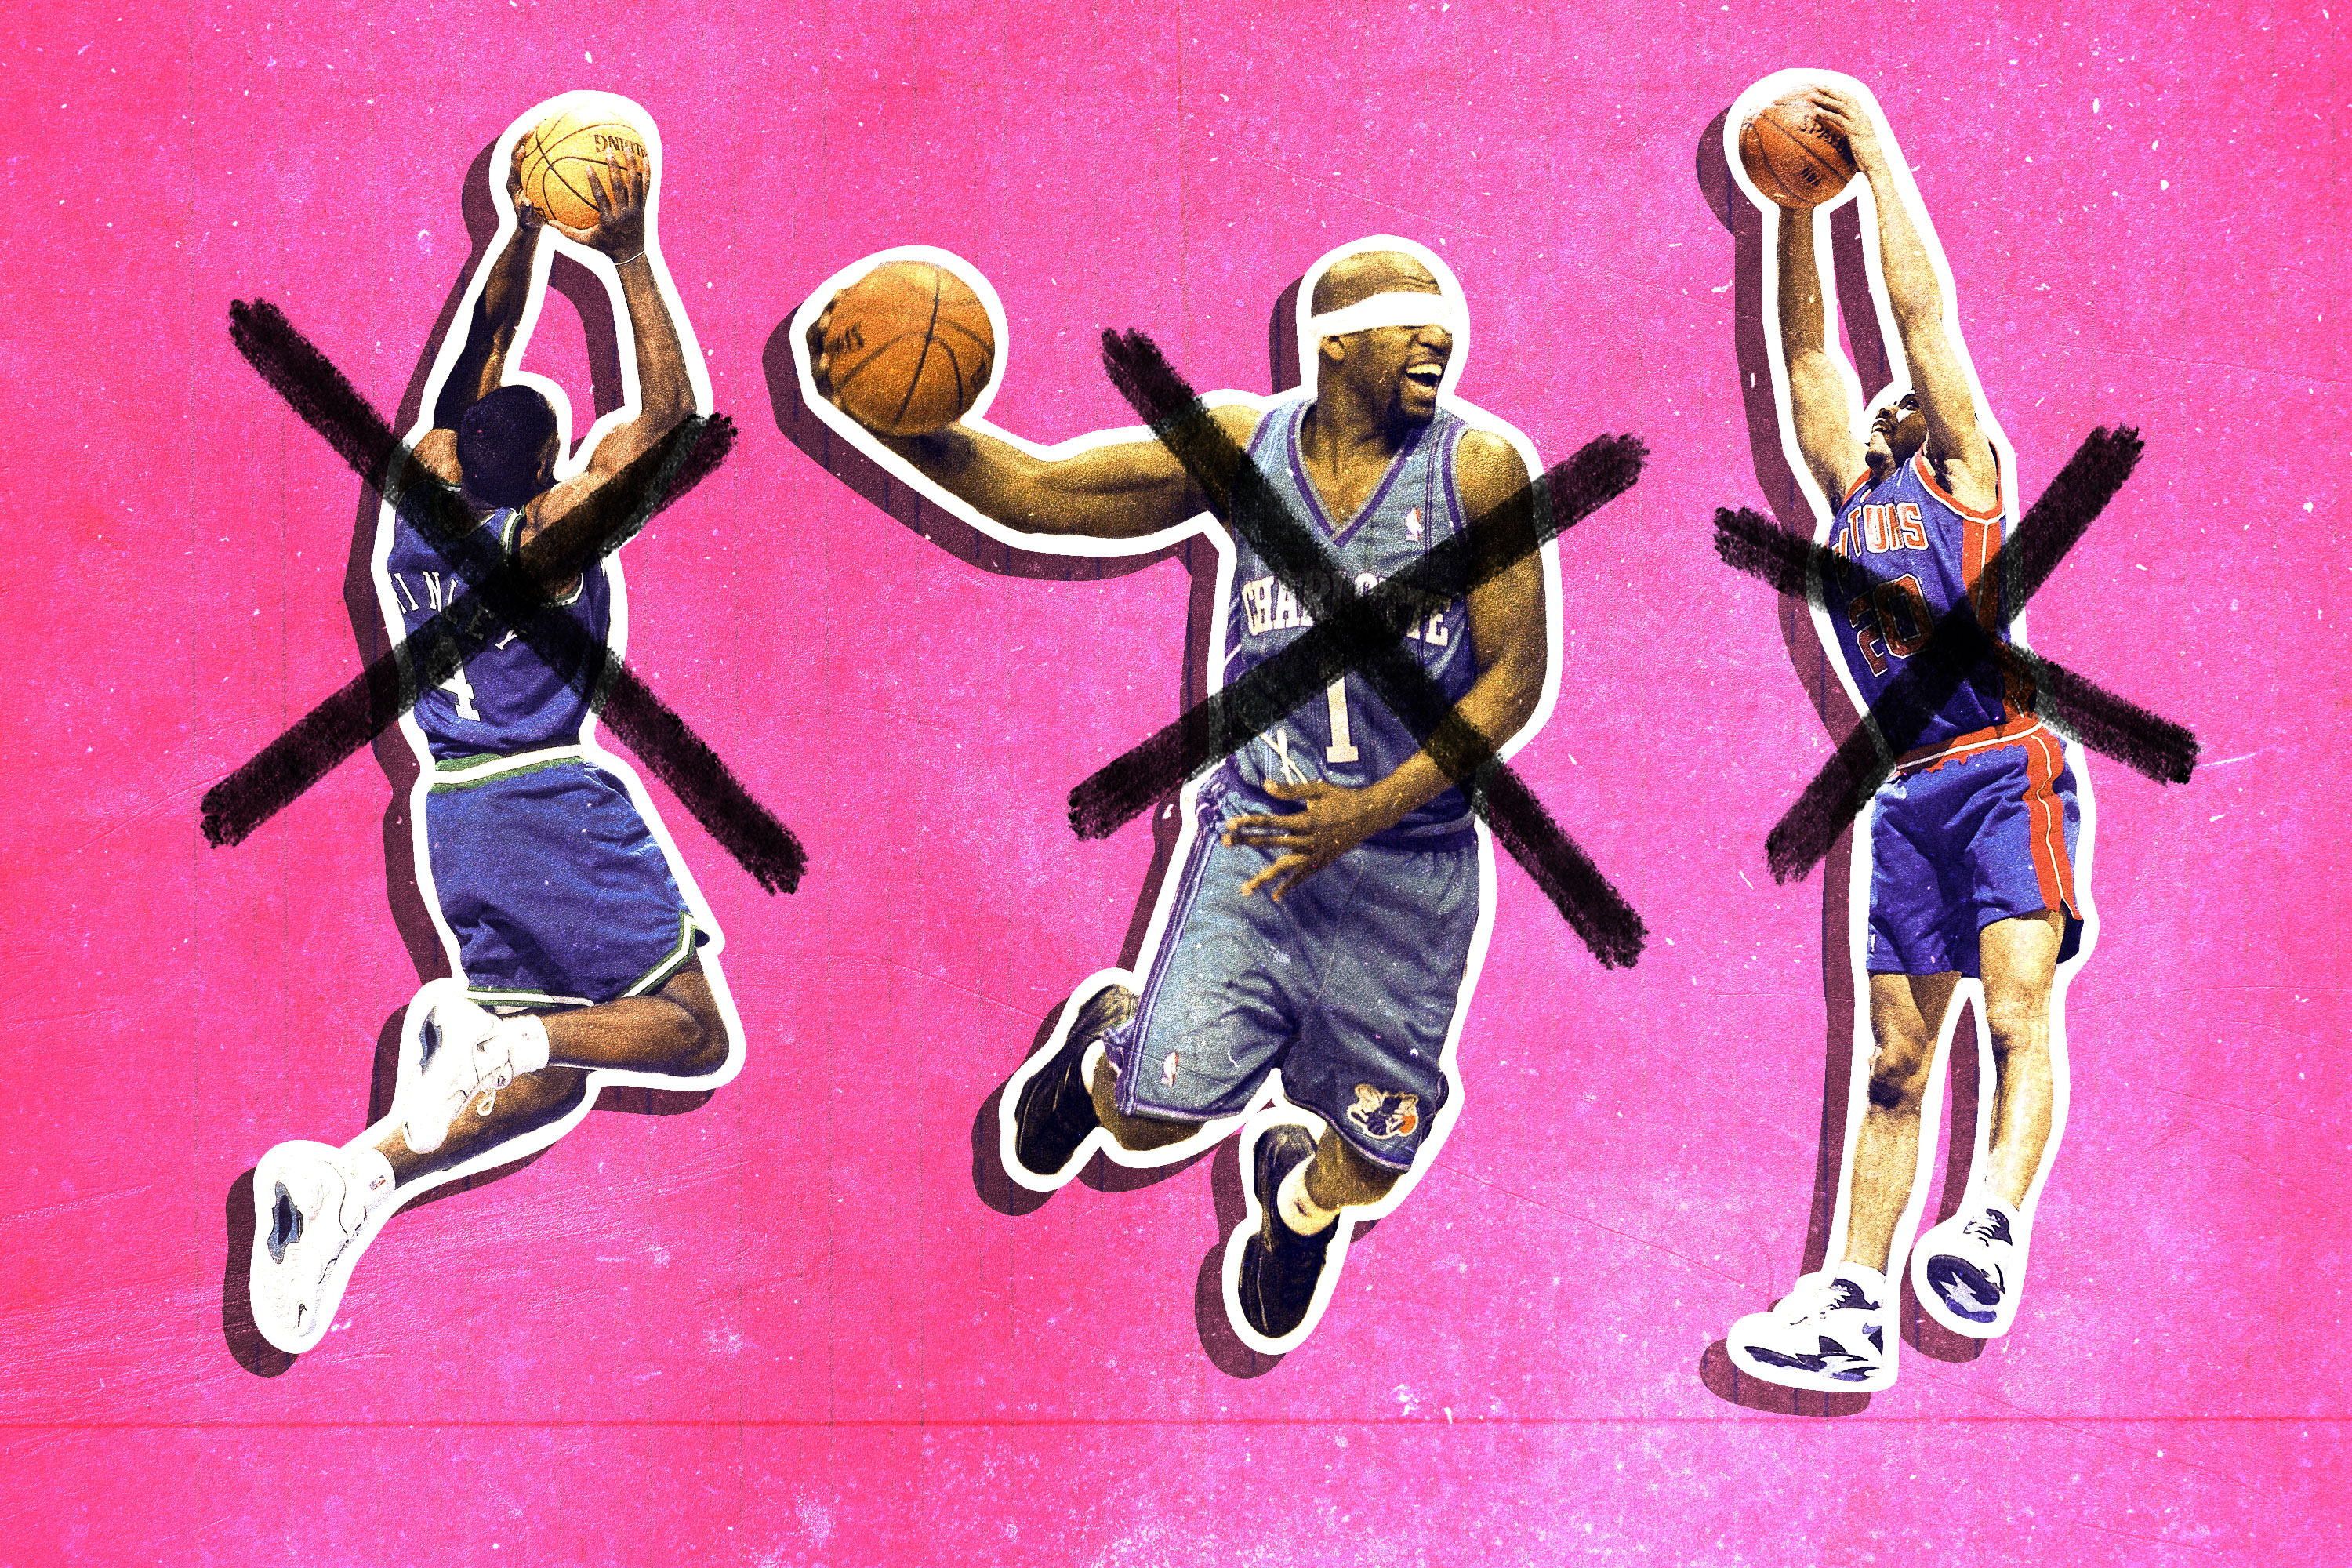 c6d0a5ce5ef What Was the Worst NBA All-Star Weekend Slam Dunk Contest Attempt ...